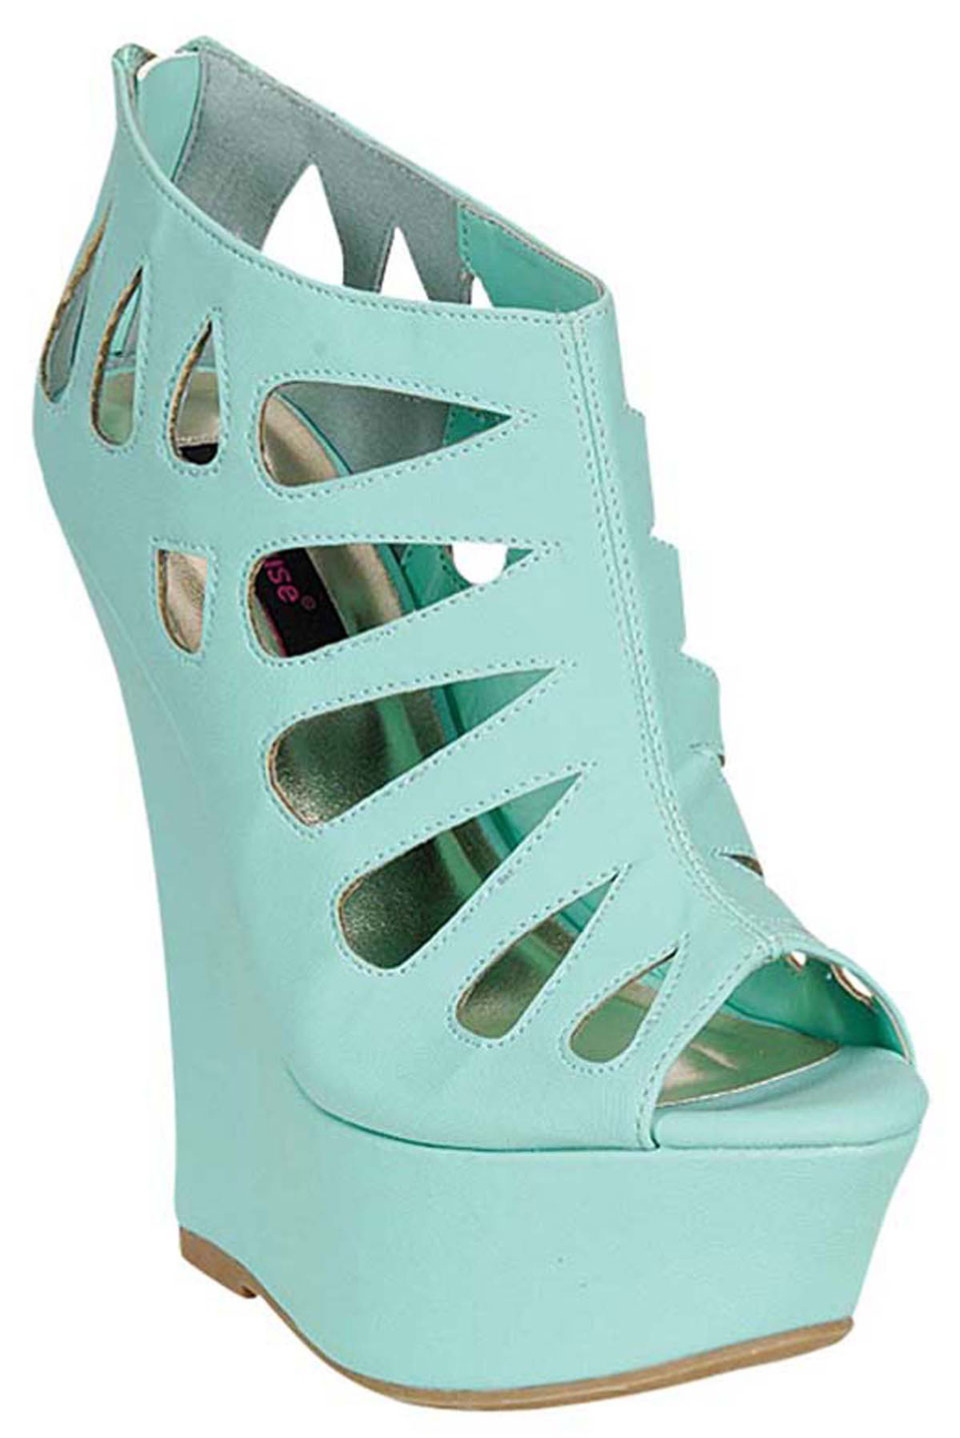 Dollhouse caged wedge bootie in mint